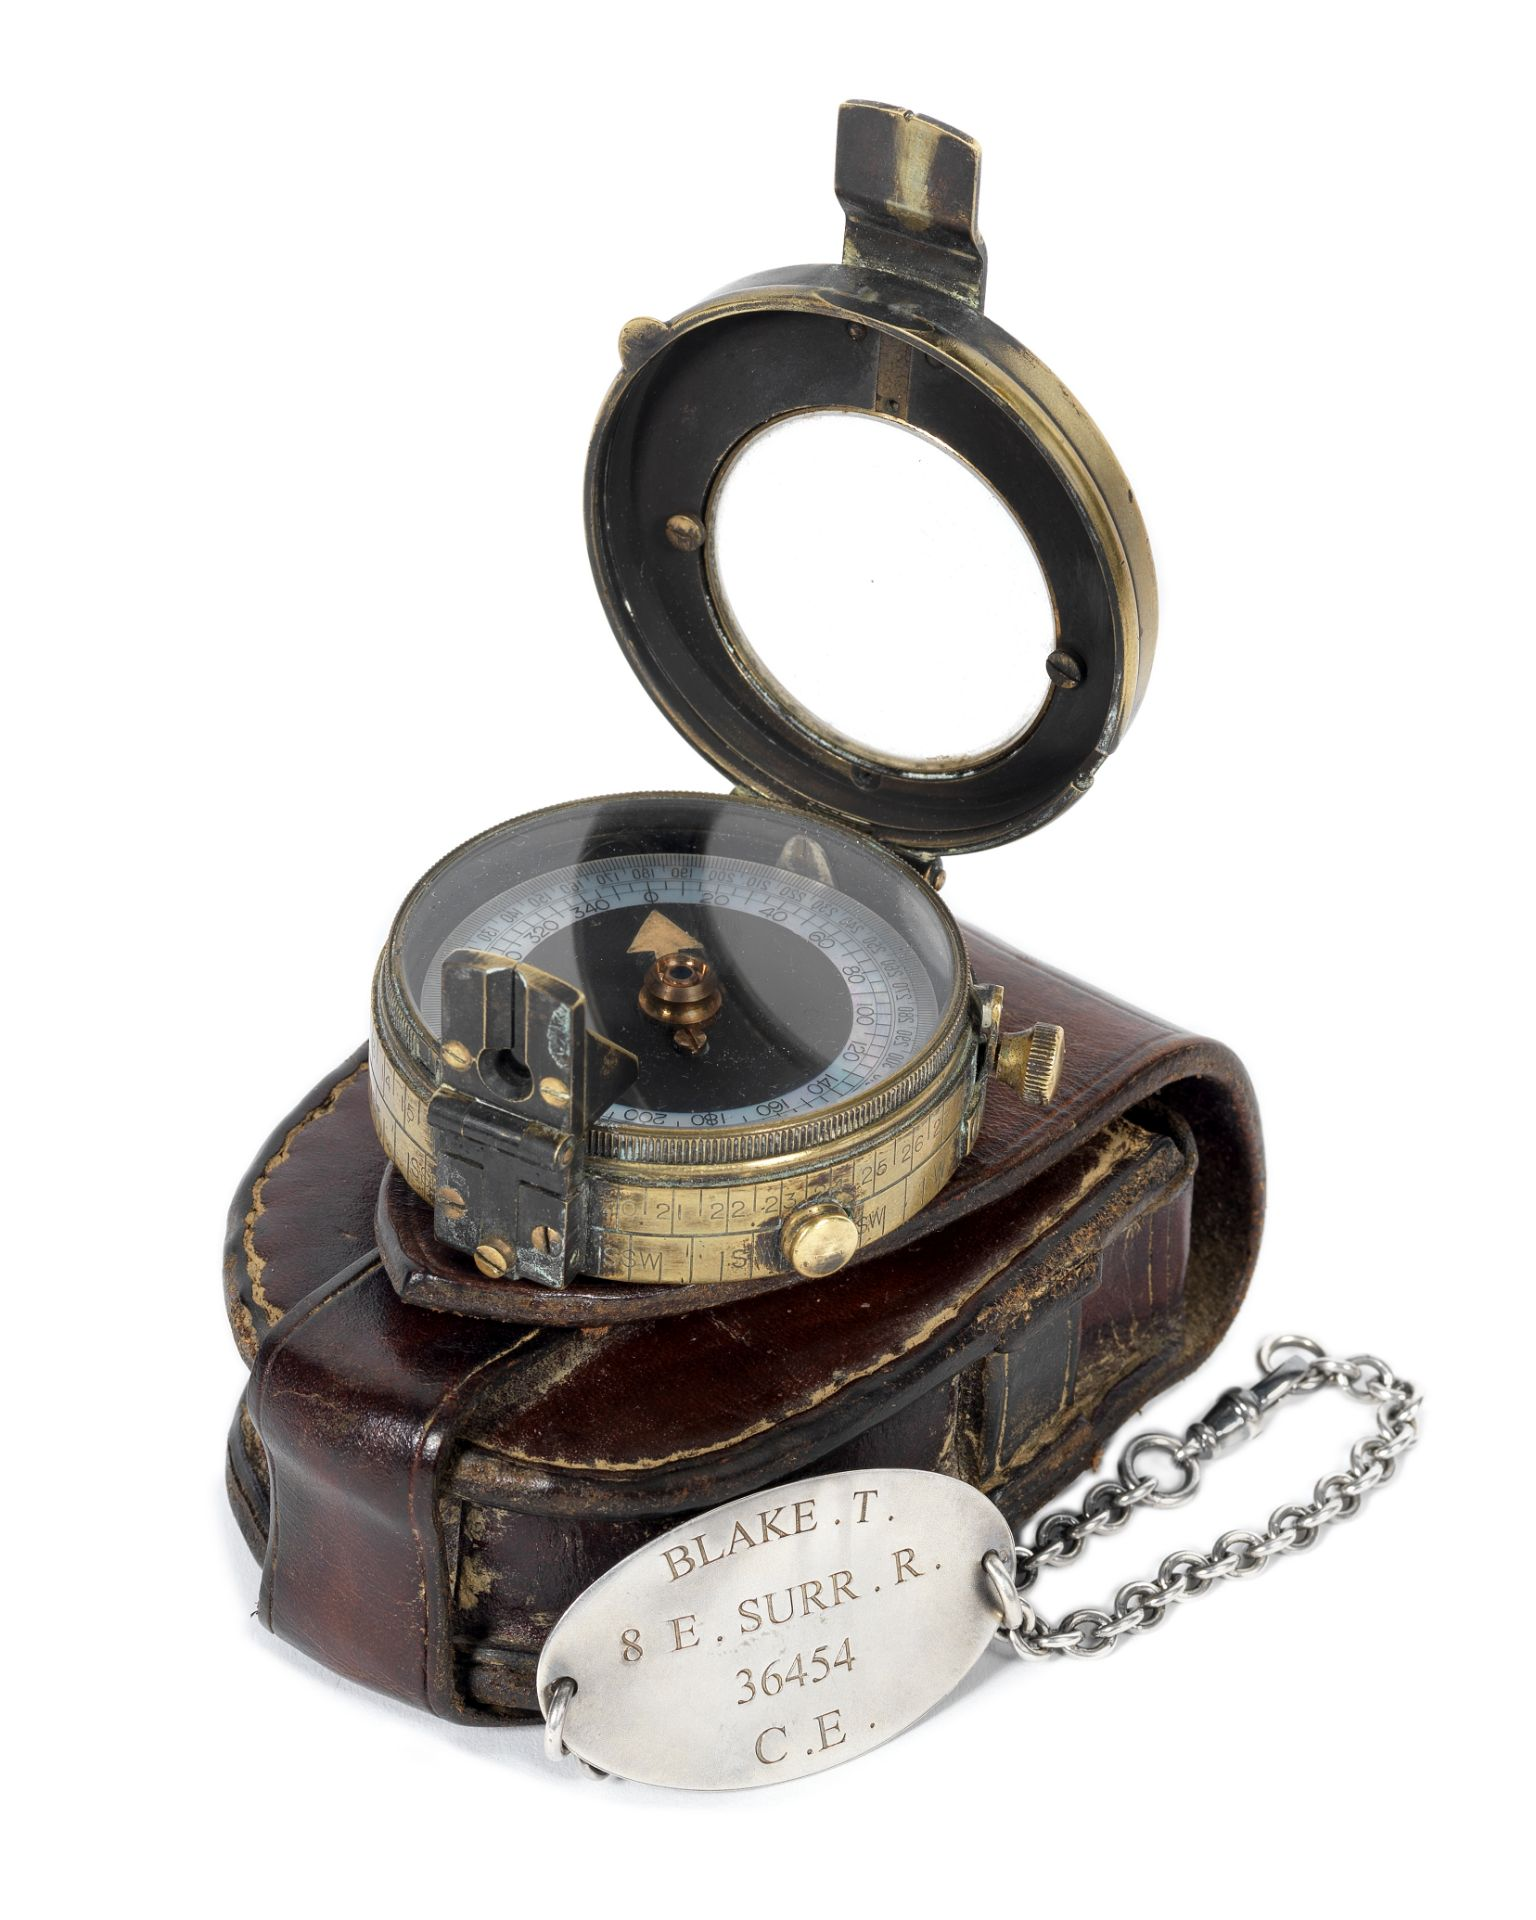 1917: A compass and identity bracelet as worn by Dean-Charles Chapman for his role as 'Lance Corp...